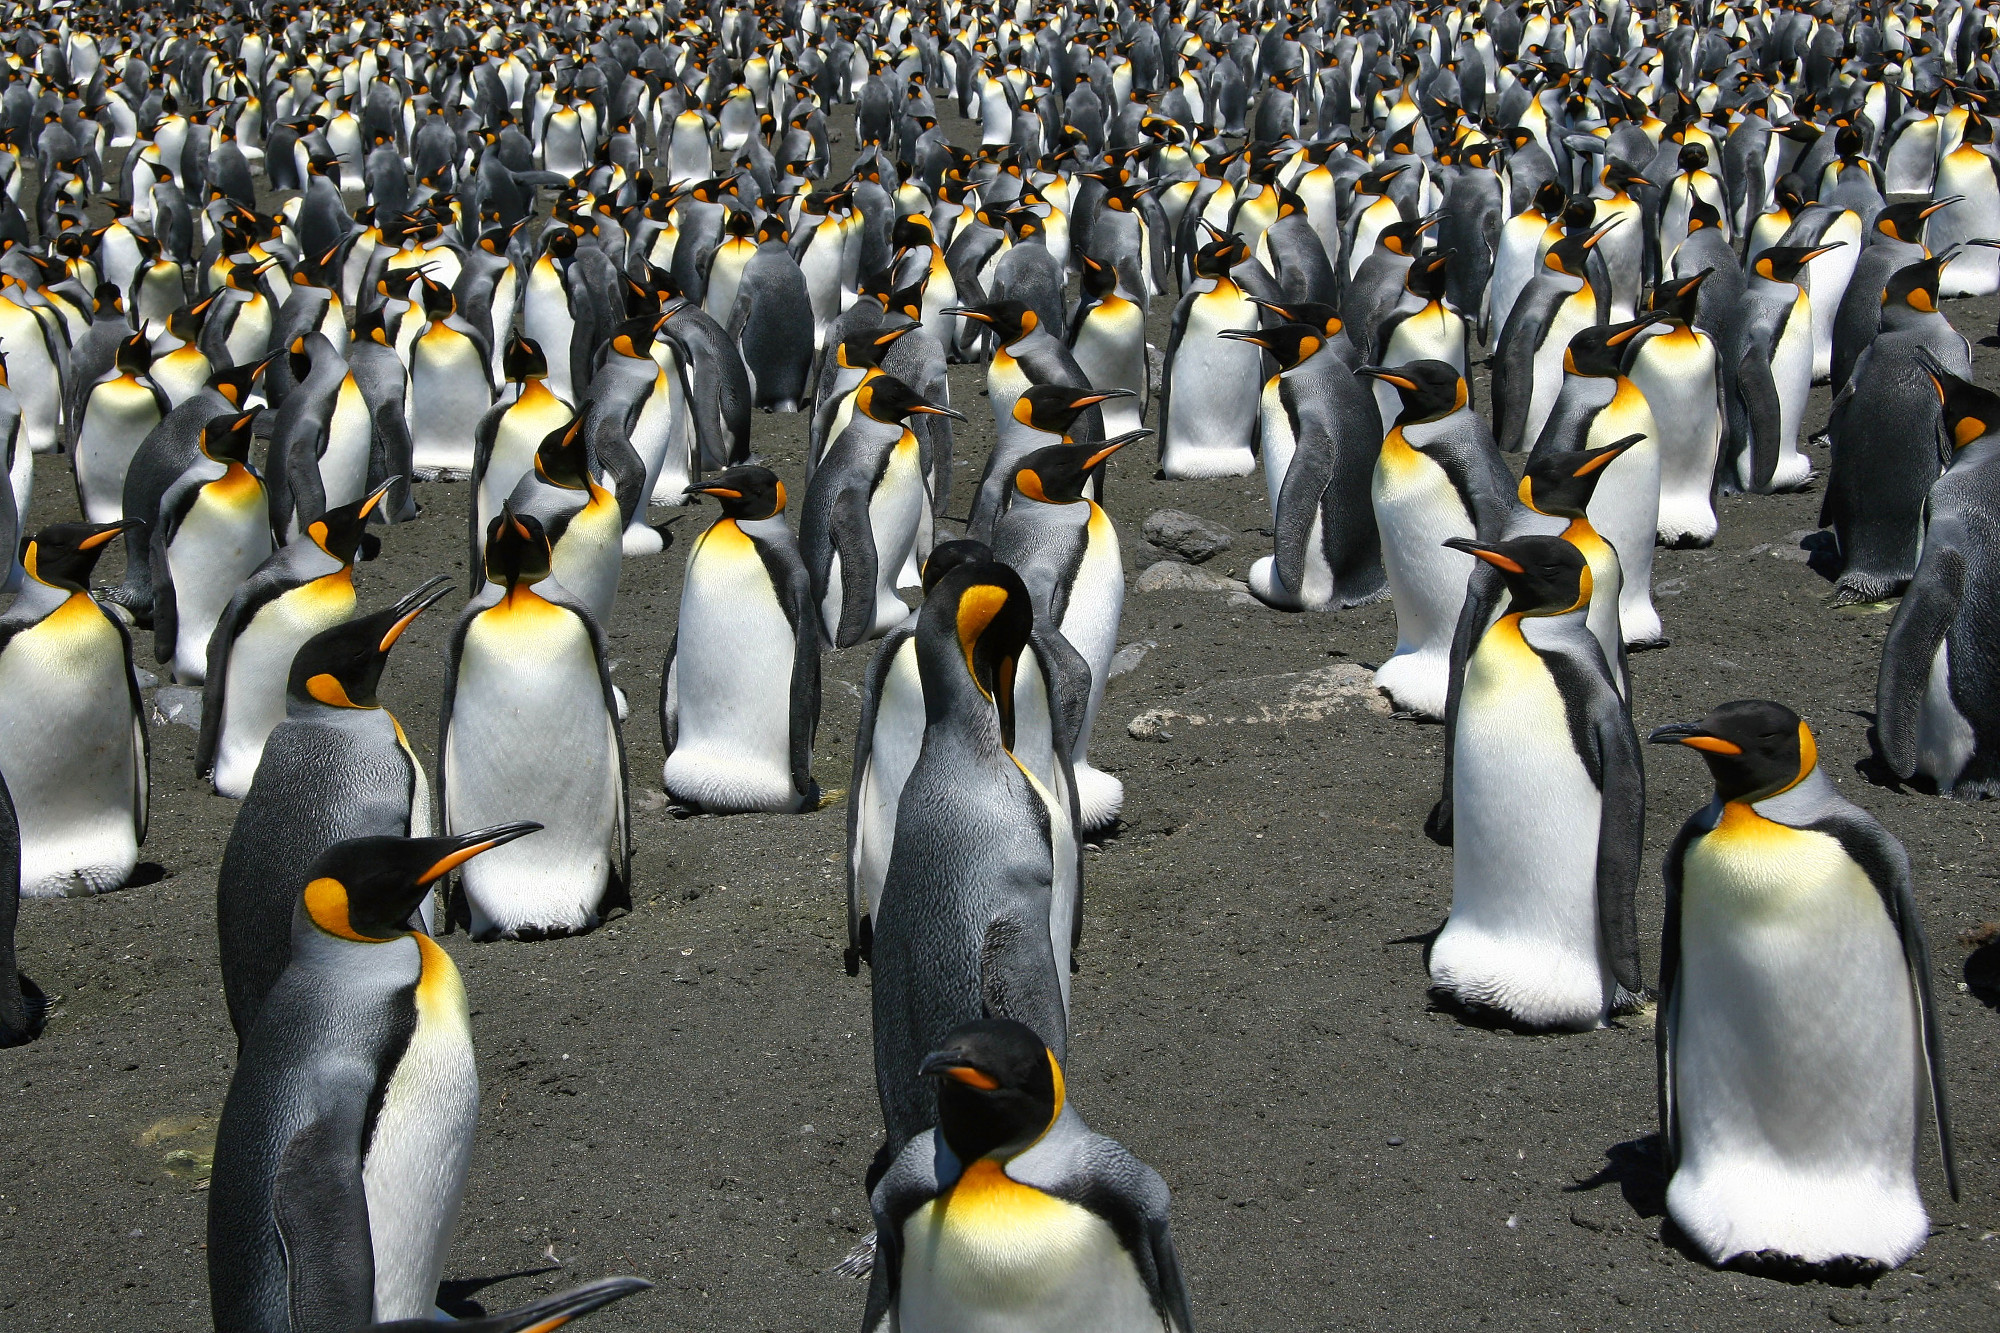 Researchers from the University of Vienna are describing the challenges faced by King penguins as the climate changes across the Antarctic region.